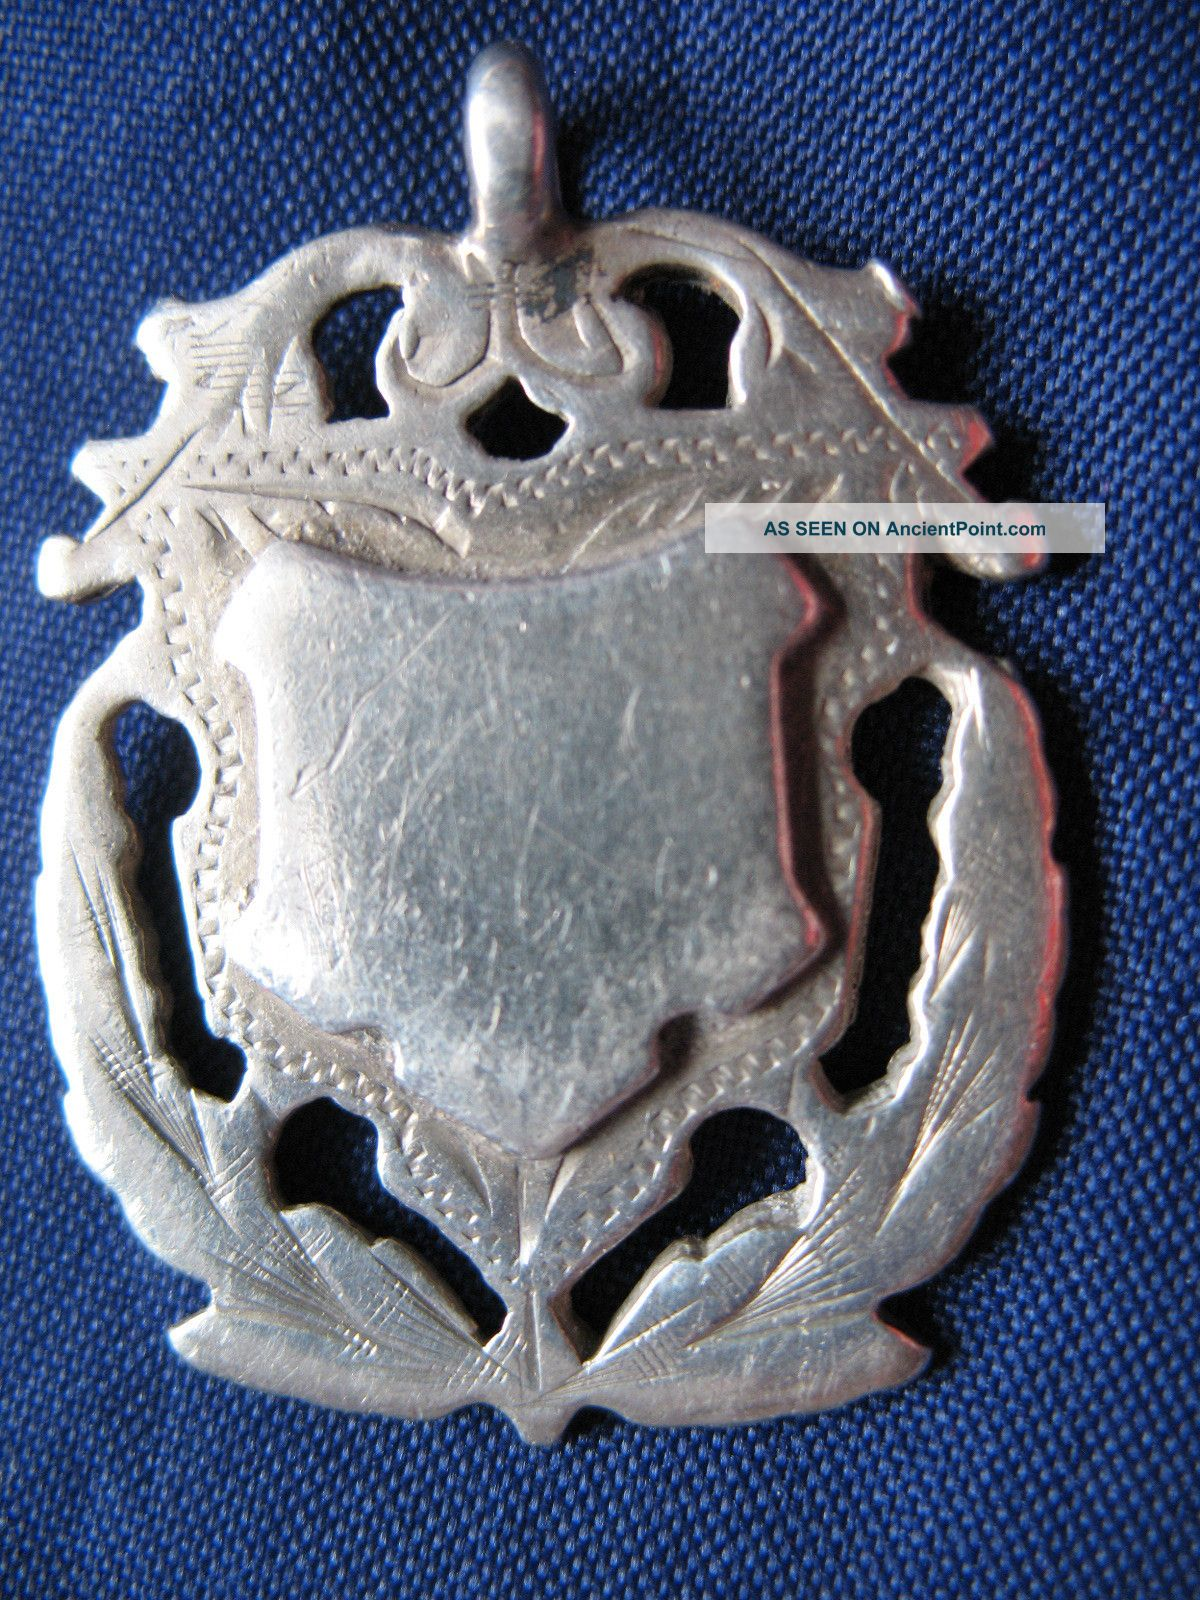 Antique Victorian Solid Silver Watch Chain Fob Birmingham 1886 - 87 Pocket Watches/ Chains/ Fobs photo